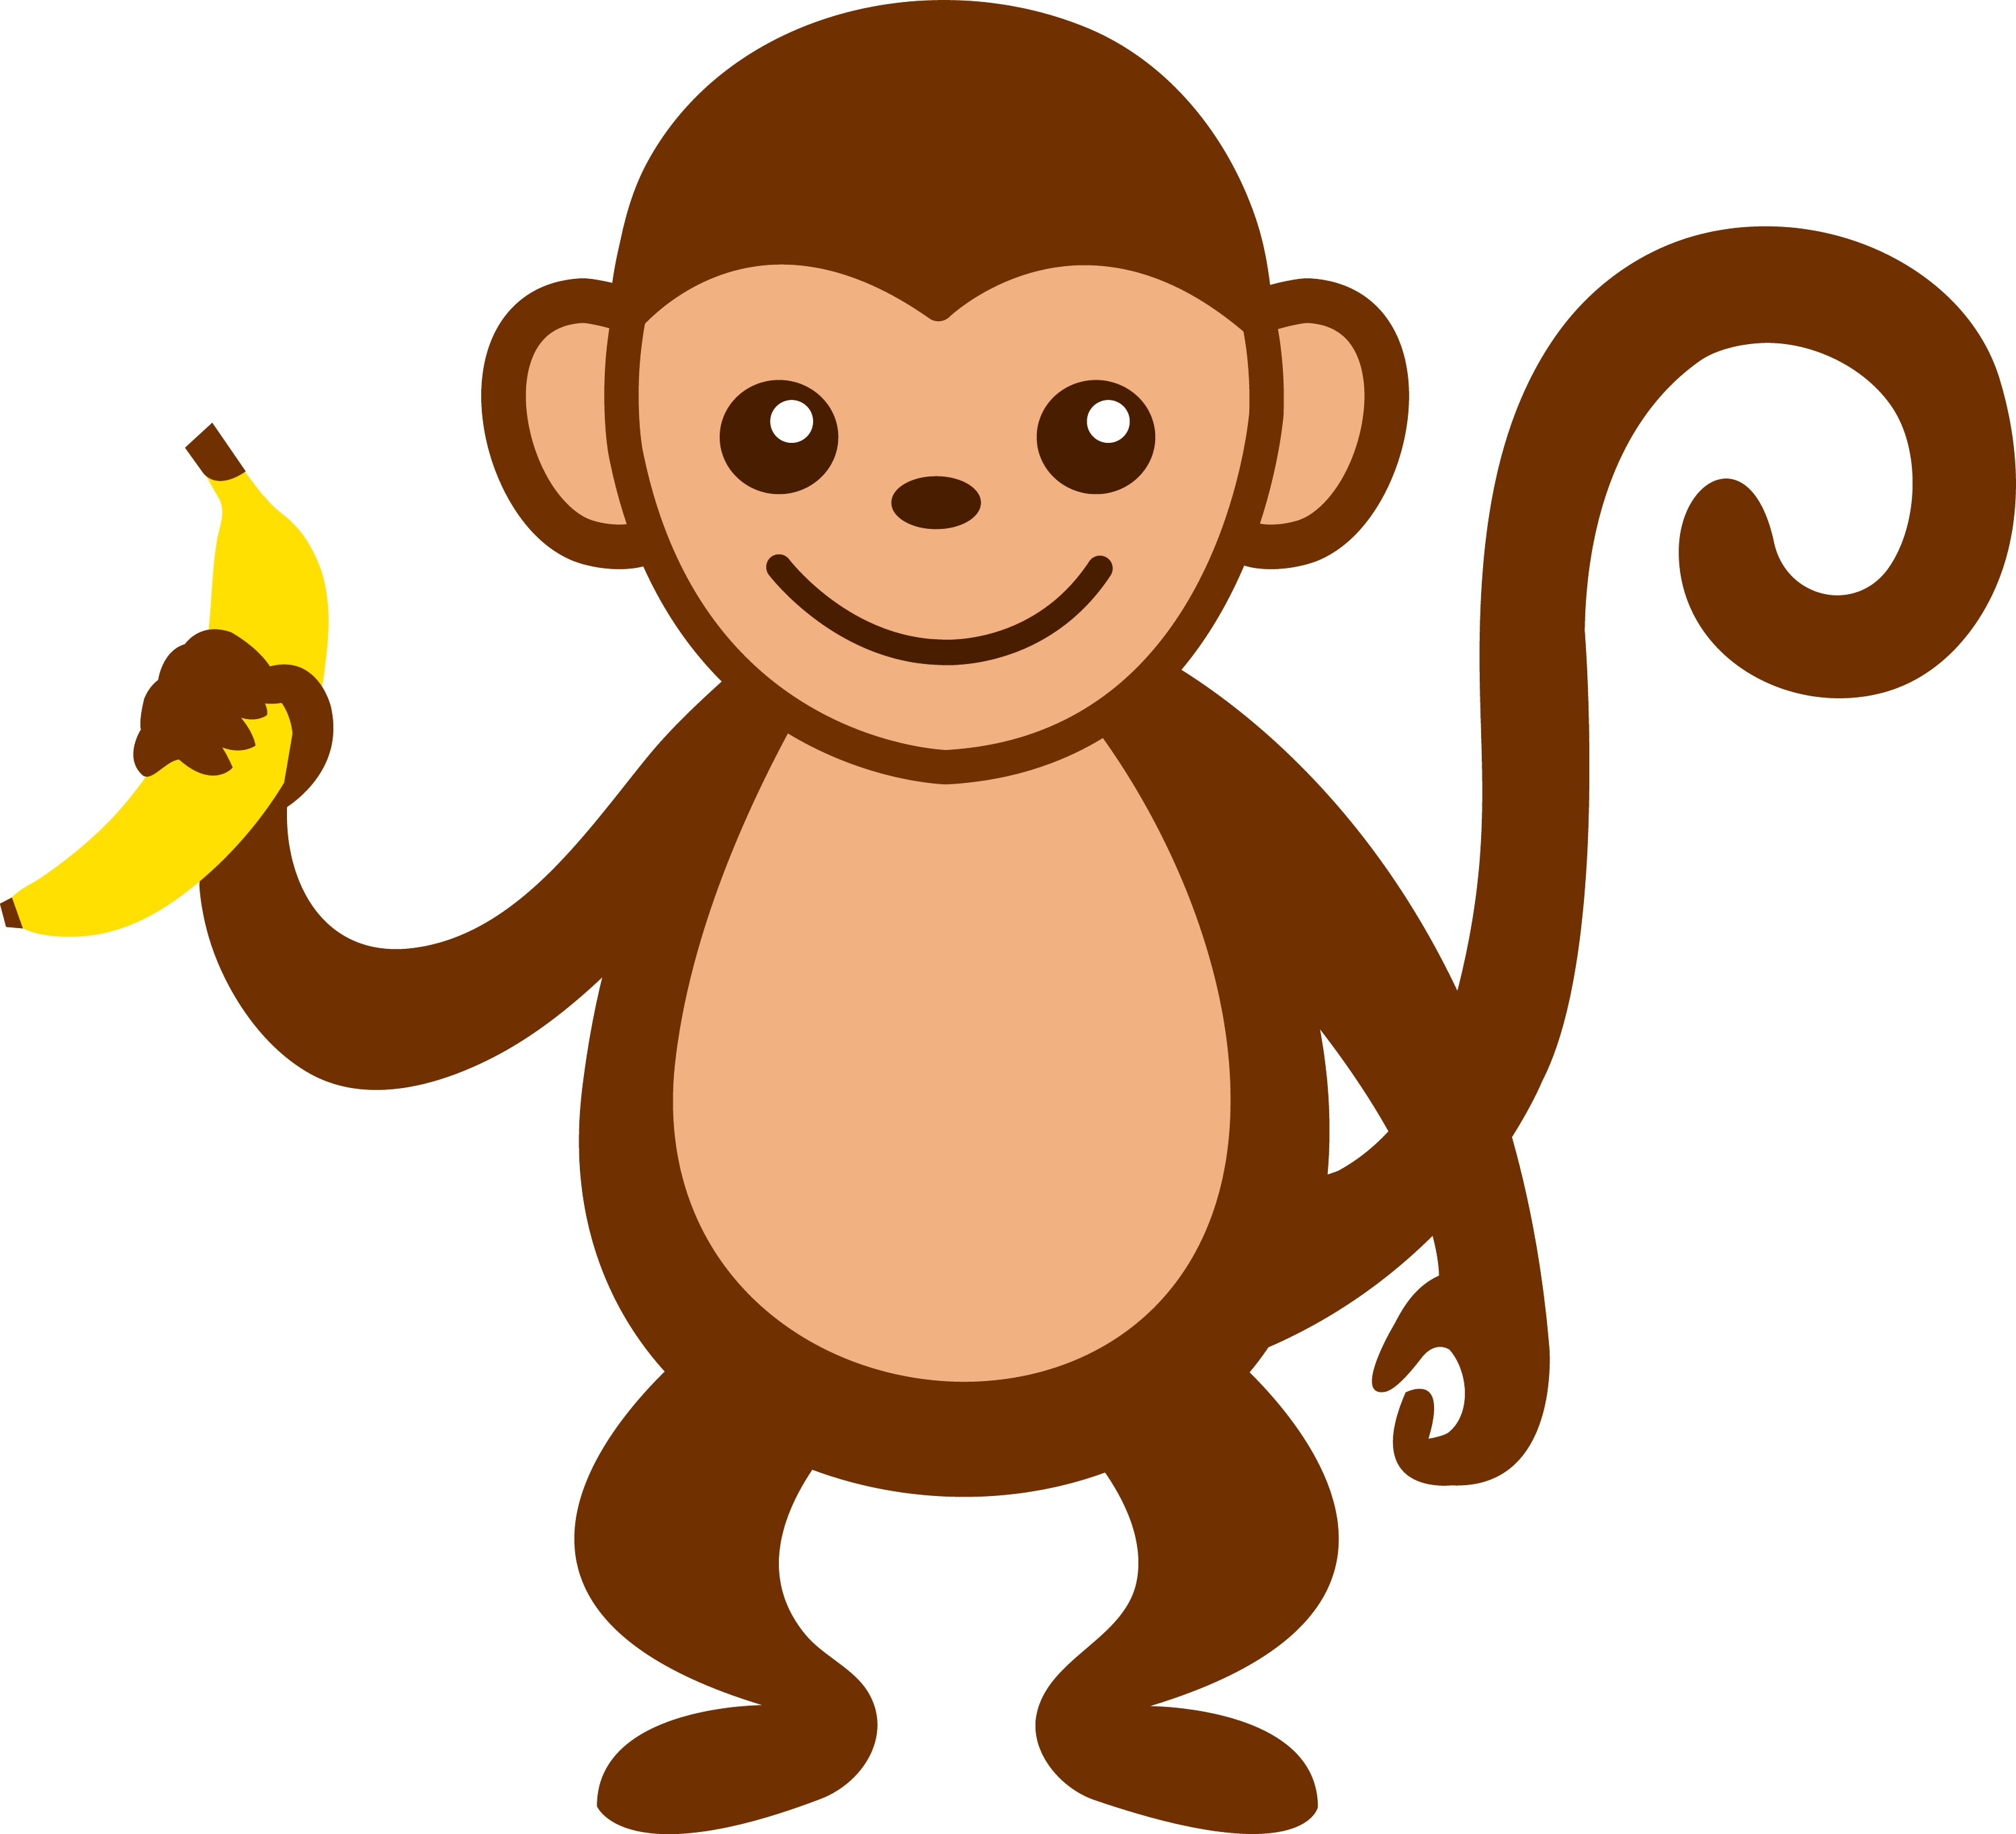 Cute Monkey With Banana - Free Clip Art